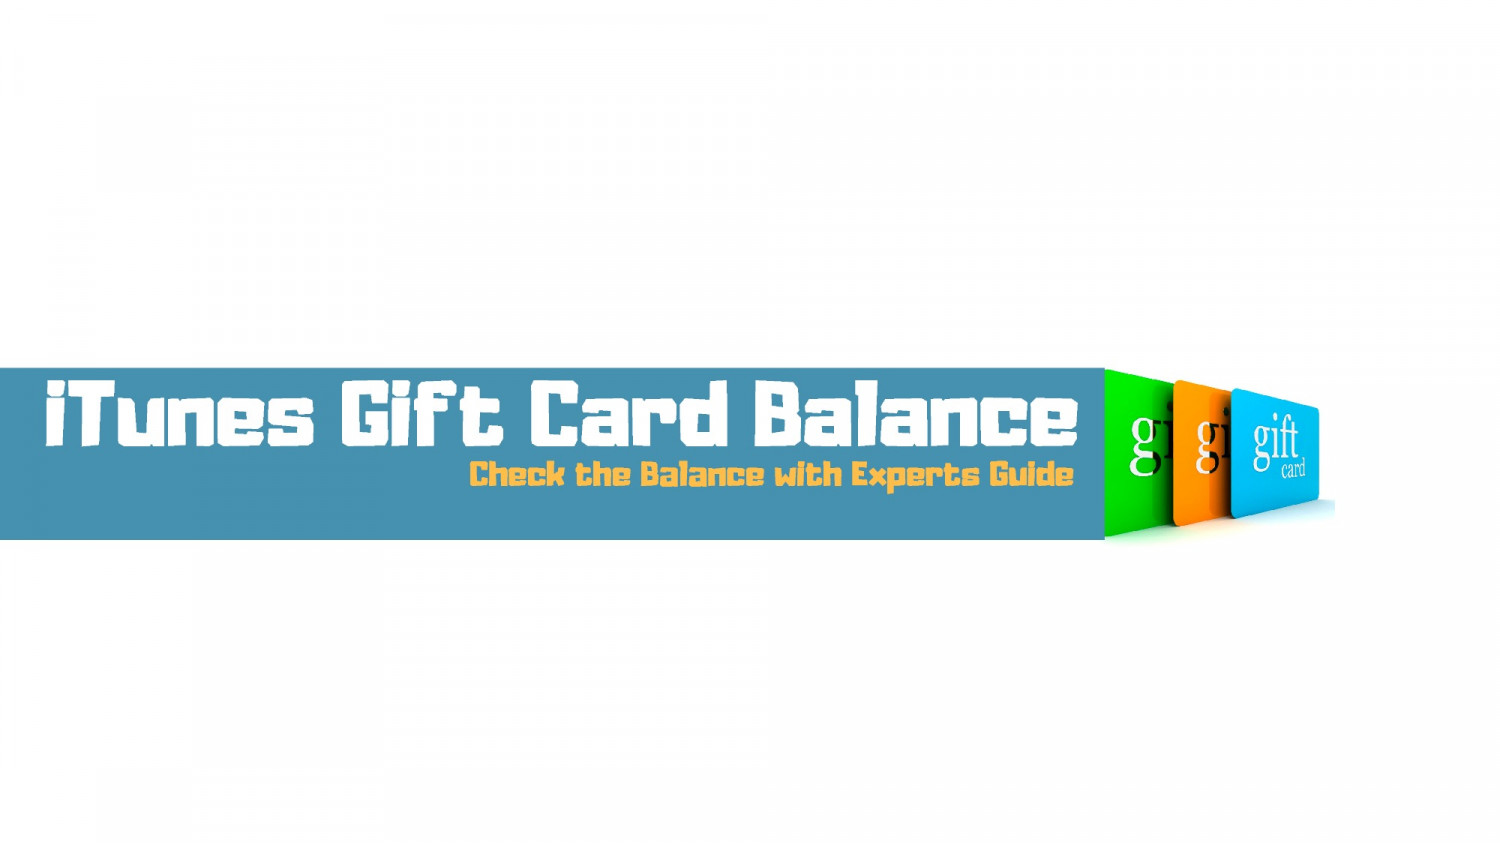 Want To Check iTunes Gift Card Balance - Must See The Experts Guide!!! Infographic